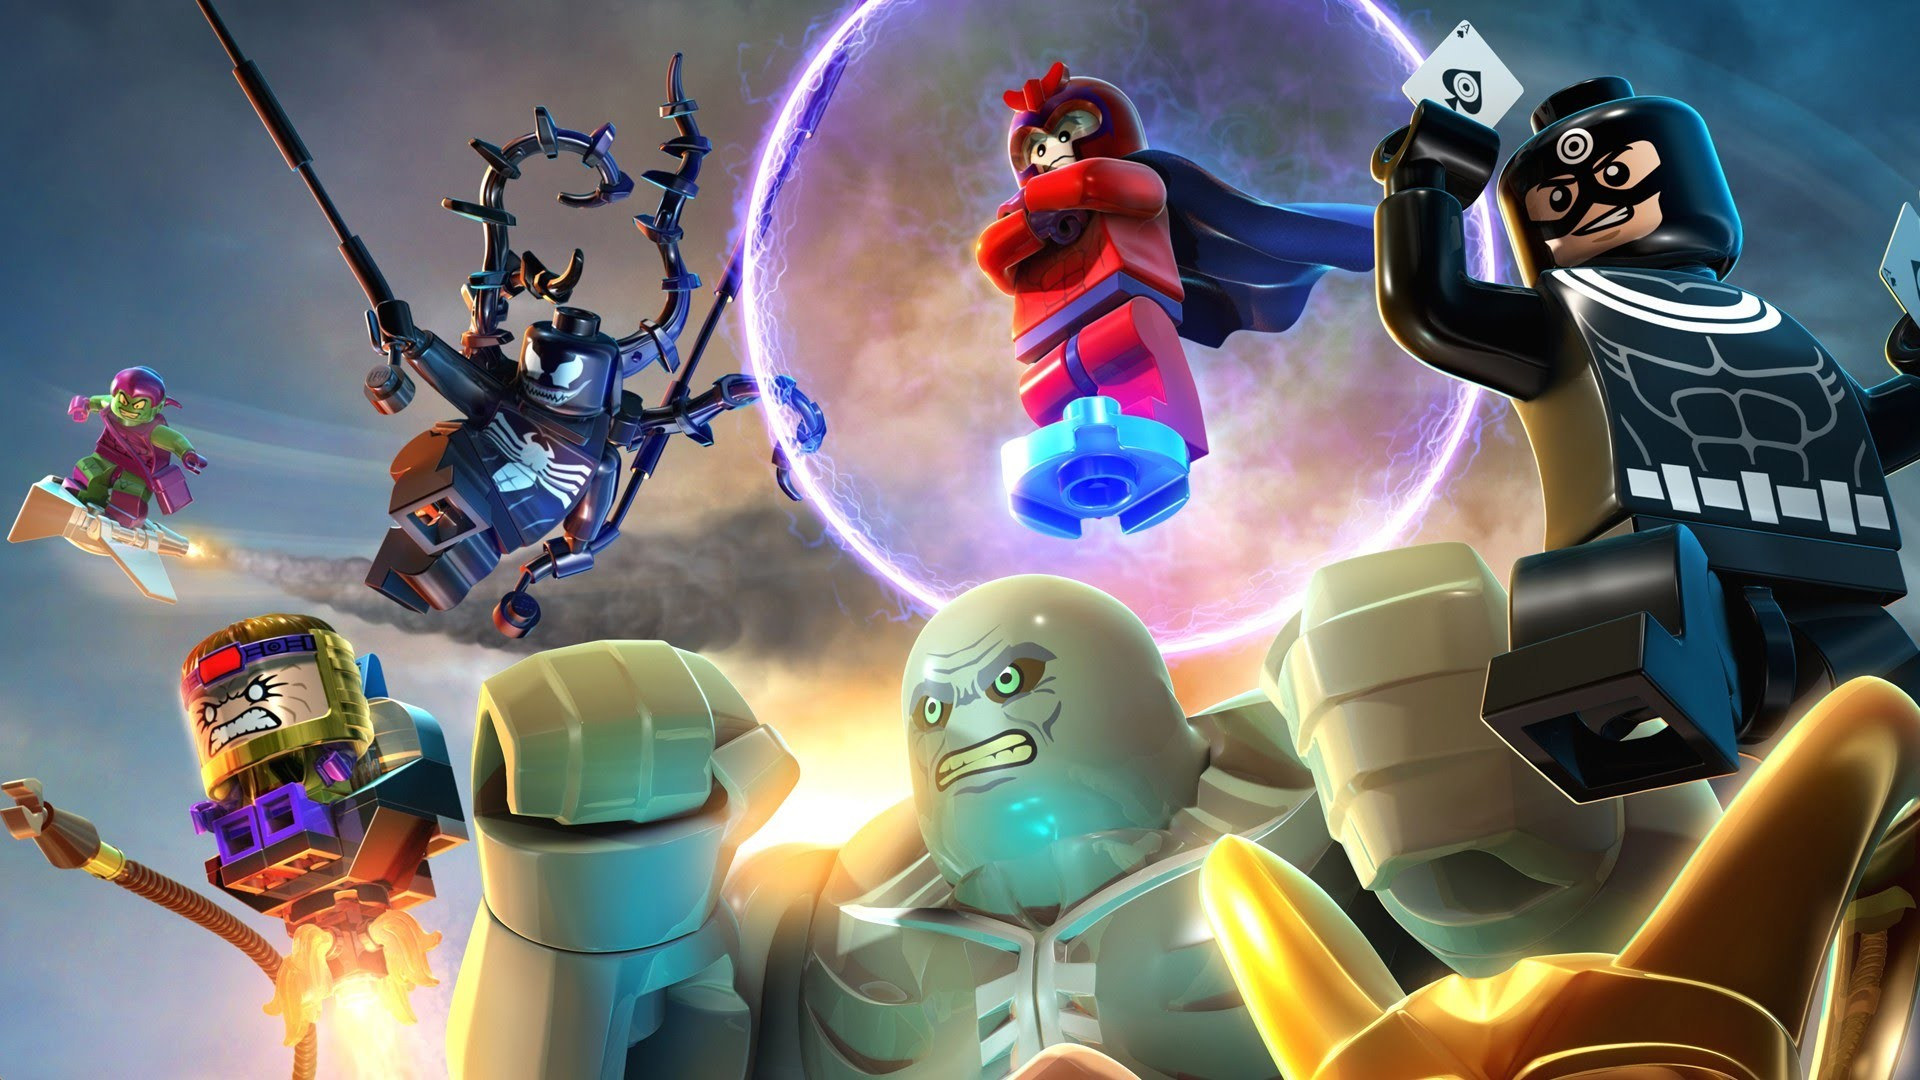 1920x1080 LEGO Marvel Super Heroes HD Wallpaper 15 - 1920 X 1080